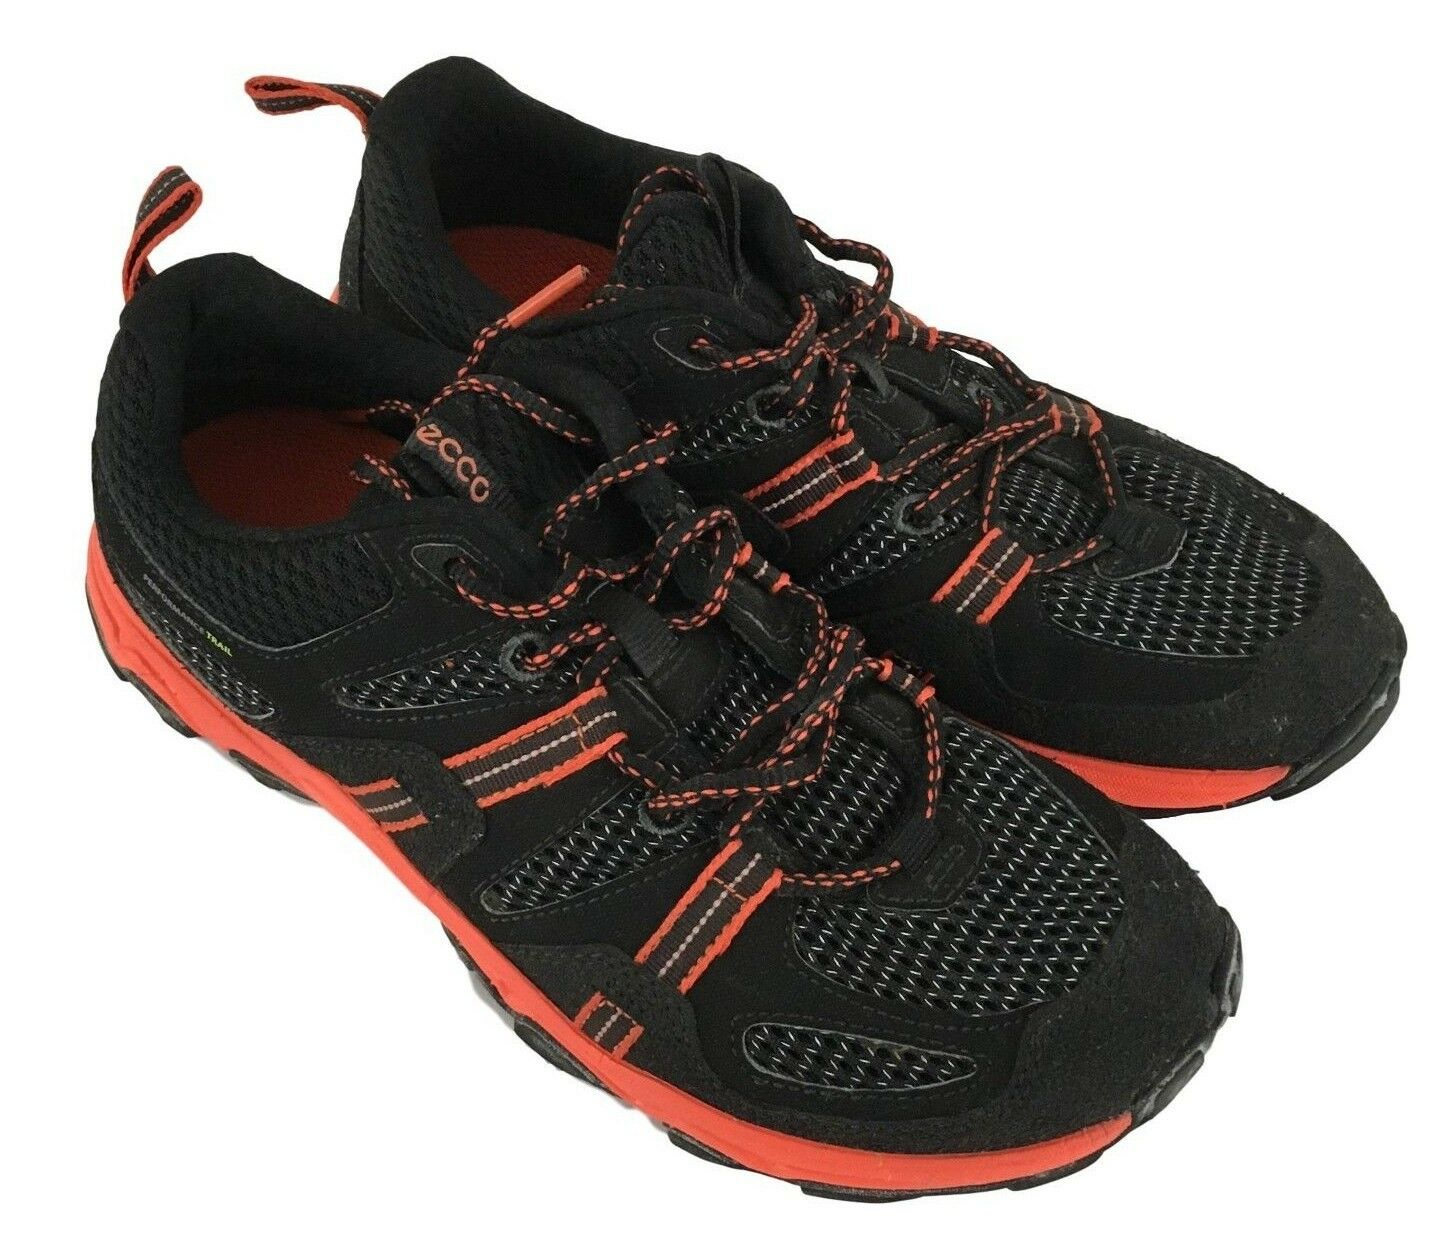 Ecco Mens Natural Motion Black Red Athletic Sneakers shoes Size 6-6.5